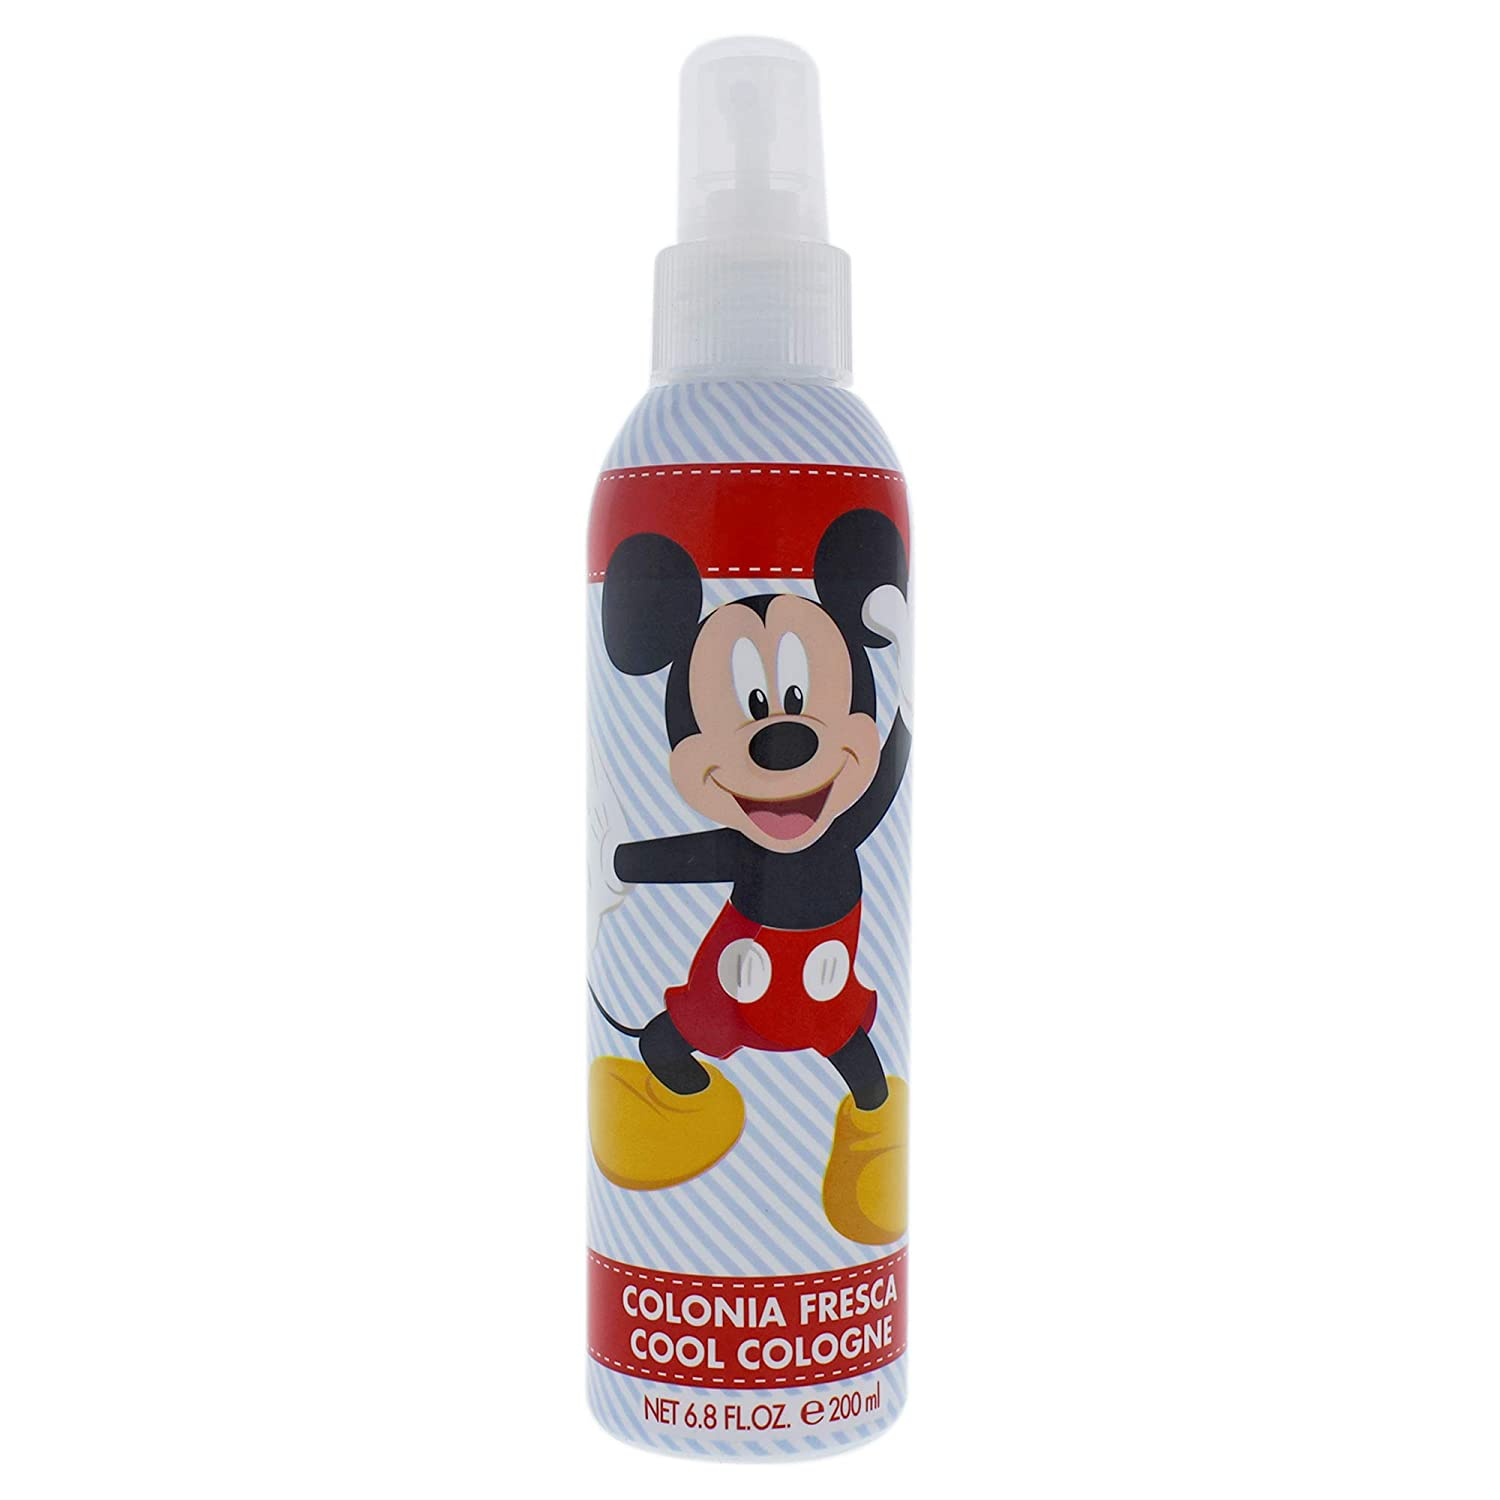 Disney Cool Cologne 200ml Made in International Spasm price Ranking TOP6 Whit Spain Red